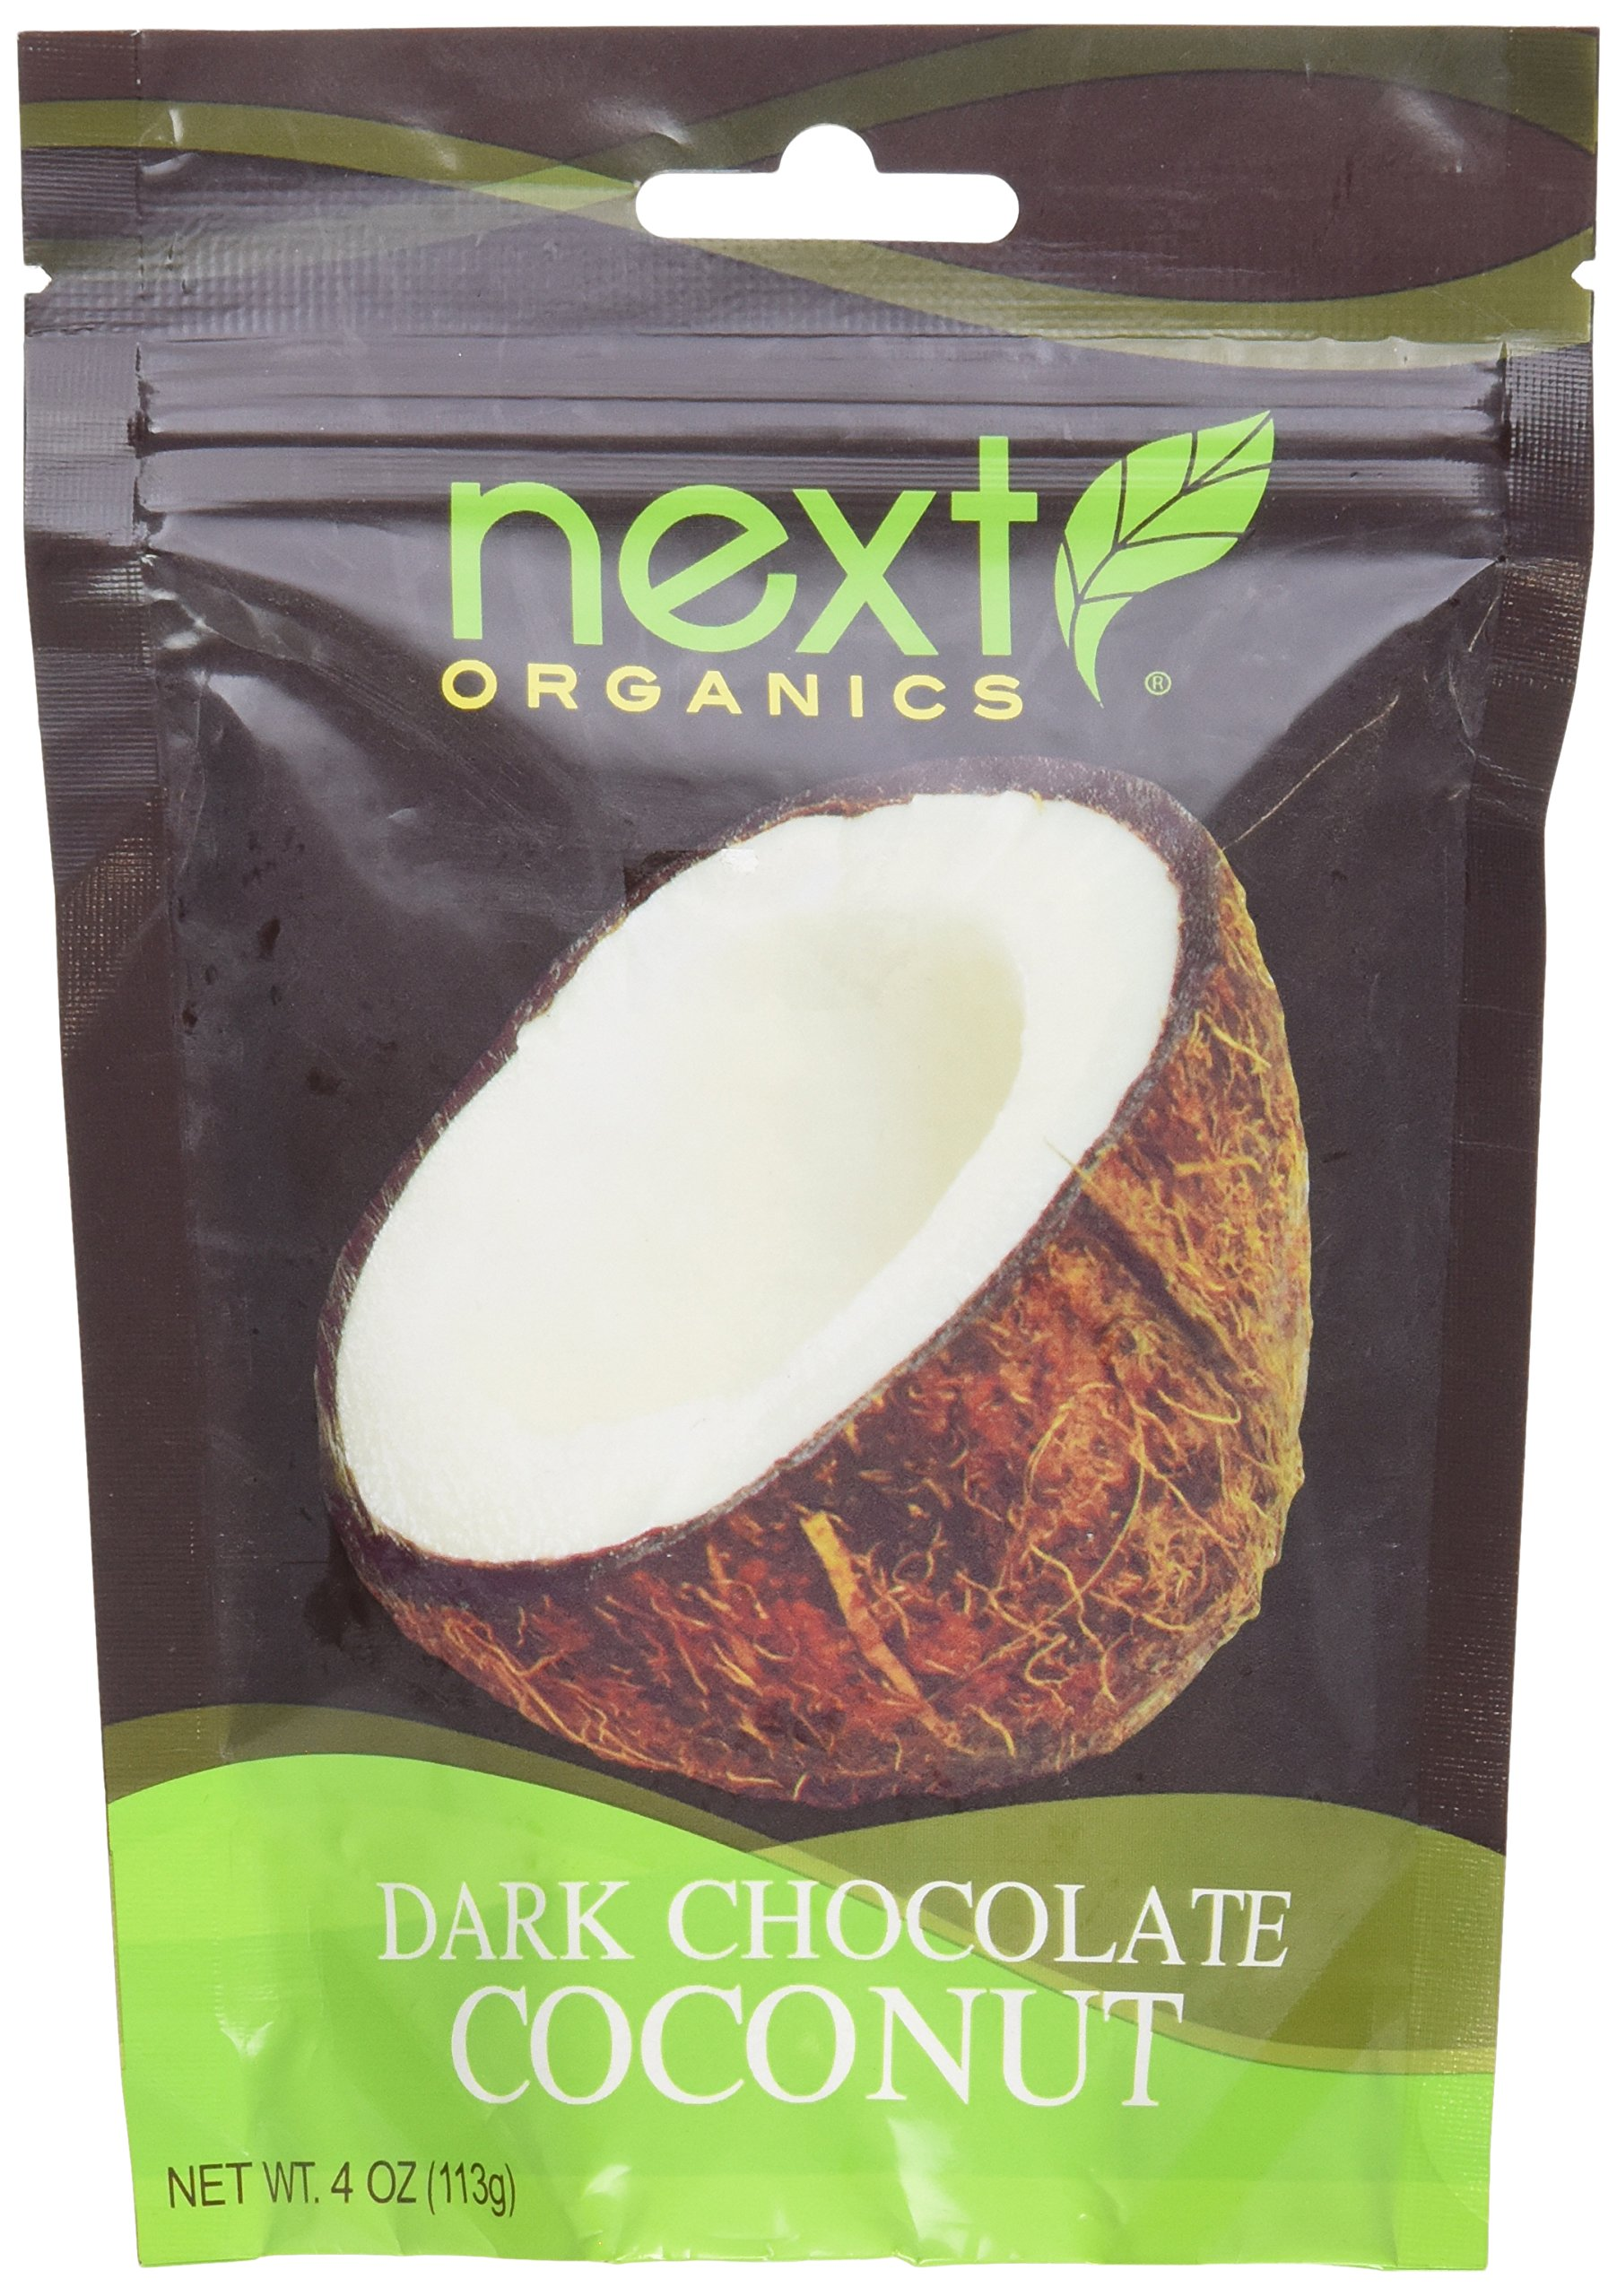 Next Organics Chocolate Covered Fruit Coconut Dark O, 4 oz